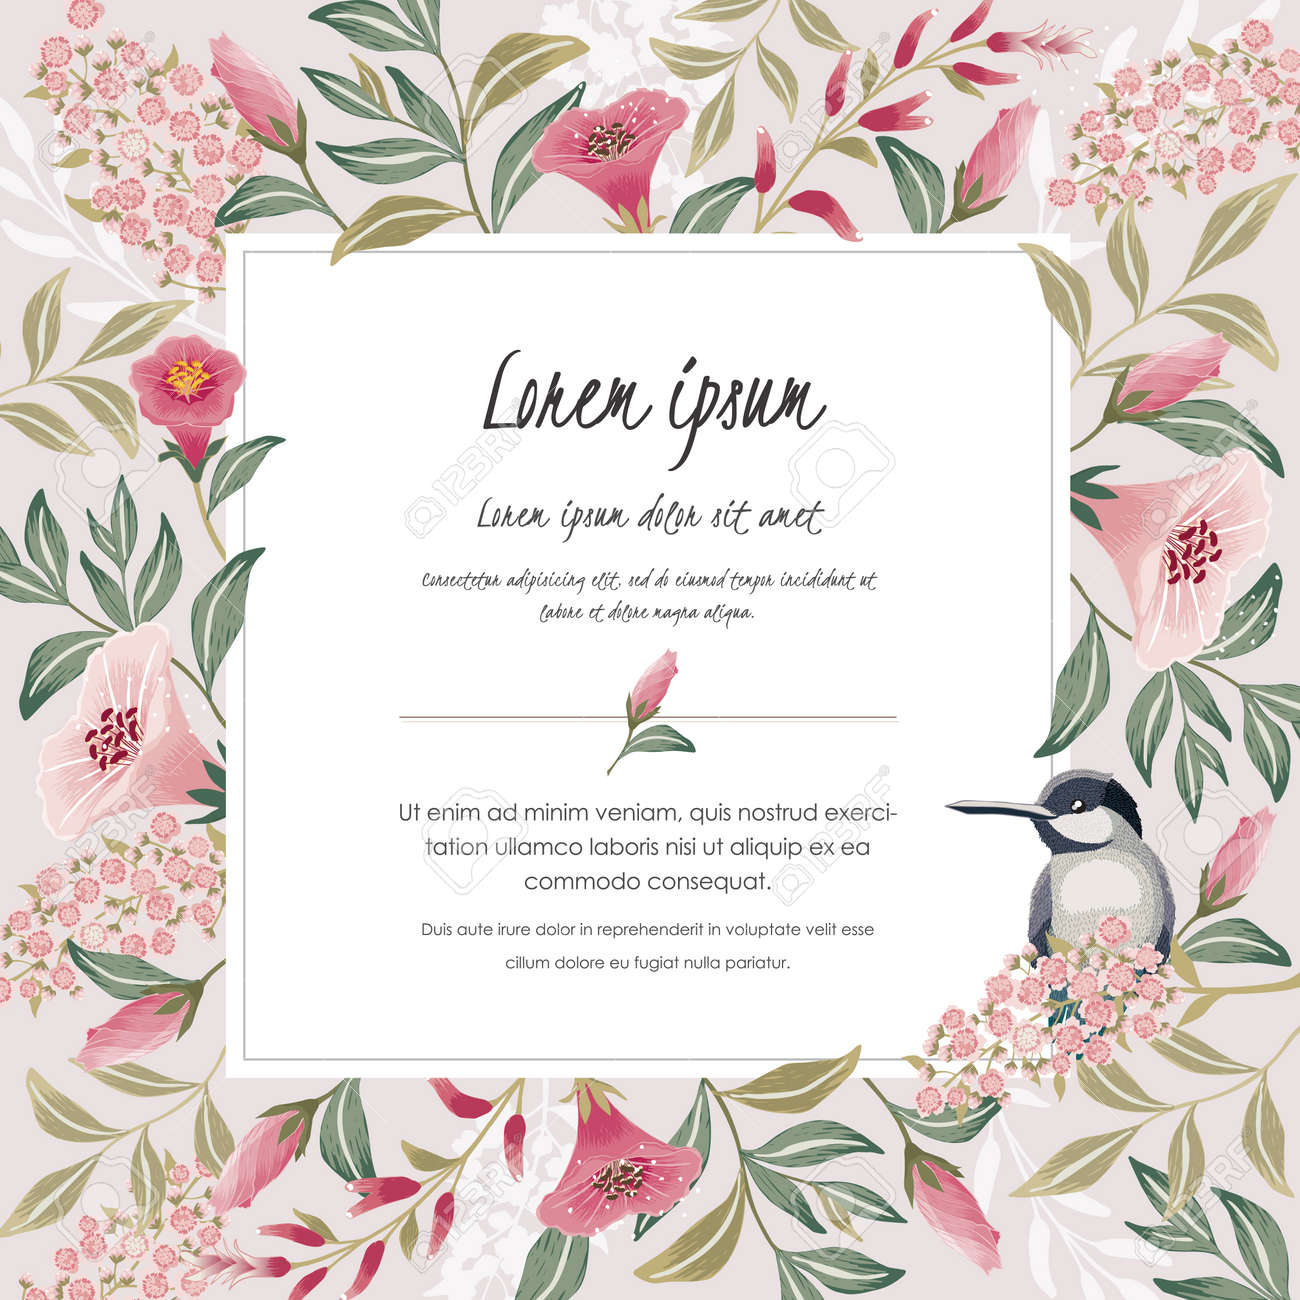 Vector illustration with a cute bird on a floral branch in spring for Wedding, anniversary, birthday and party. Design for banner, poster, card, invitation and scrapbook - 169640765